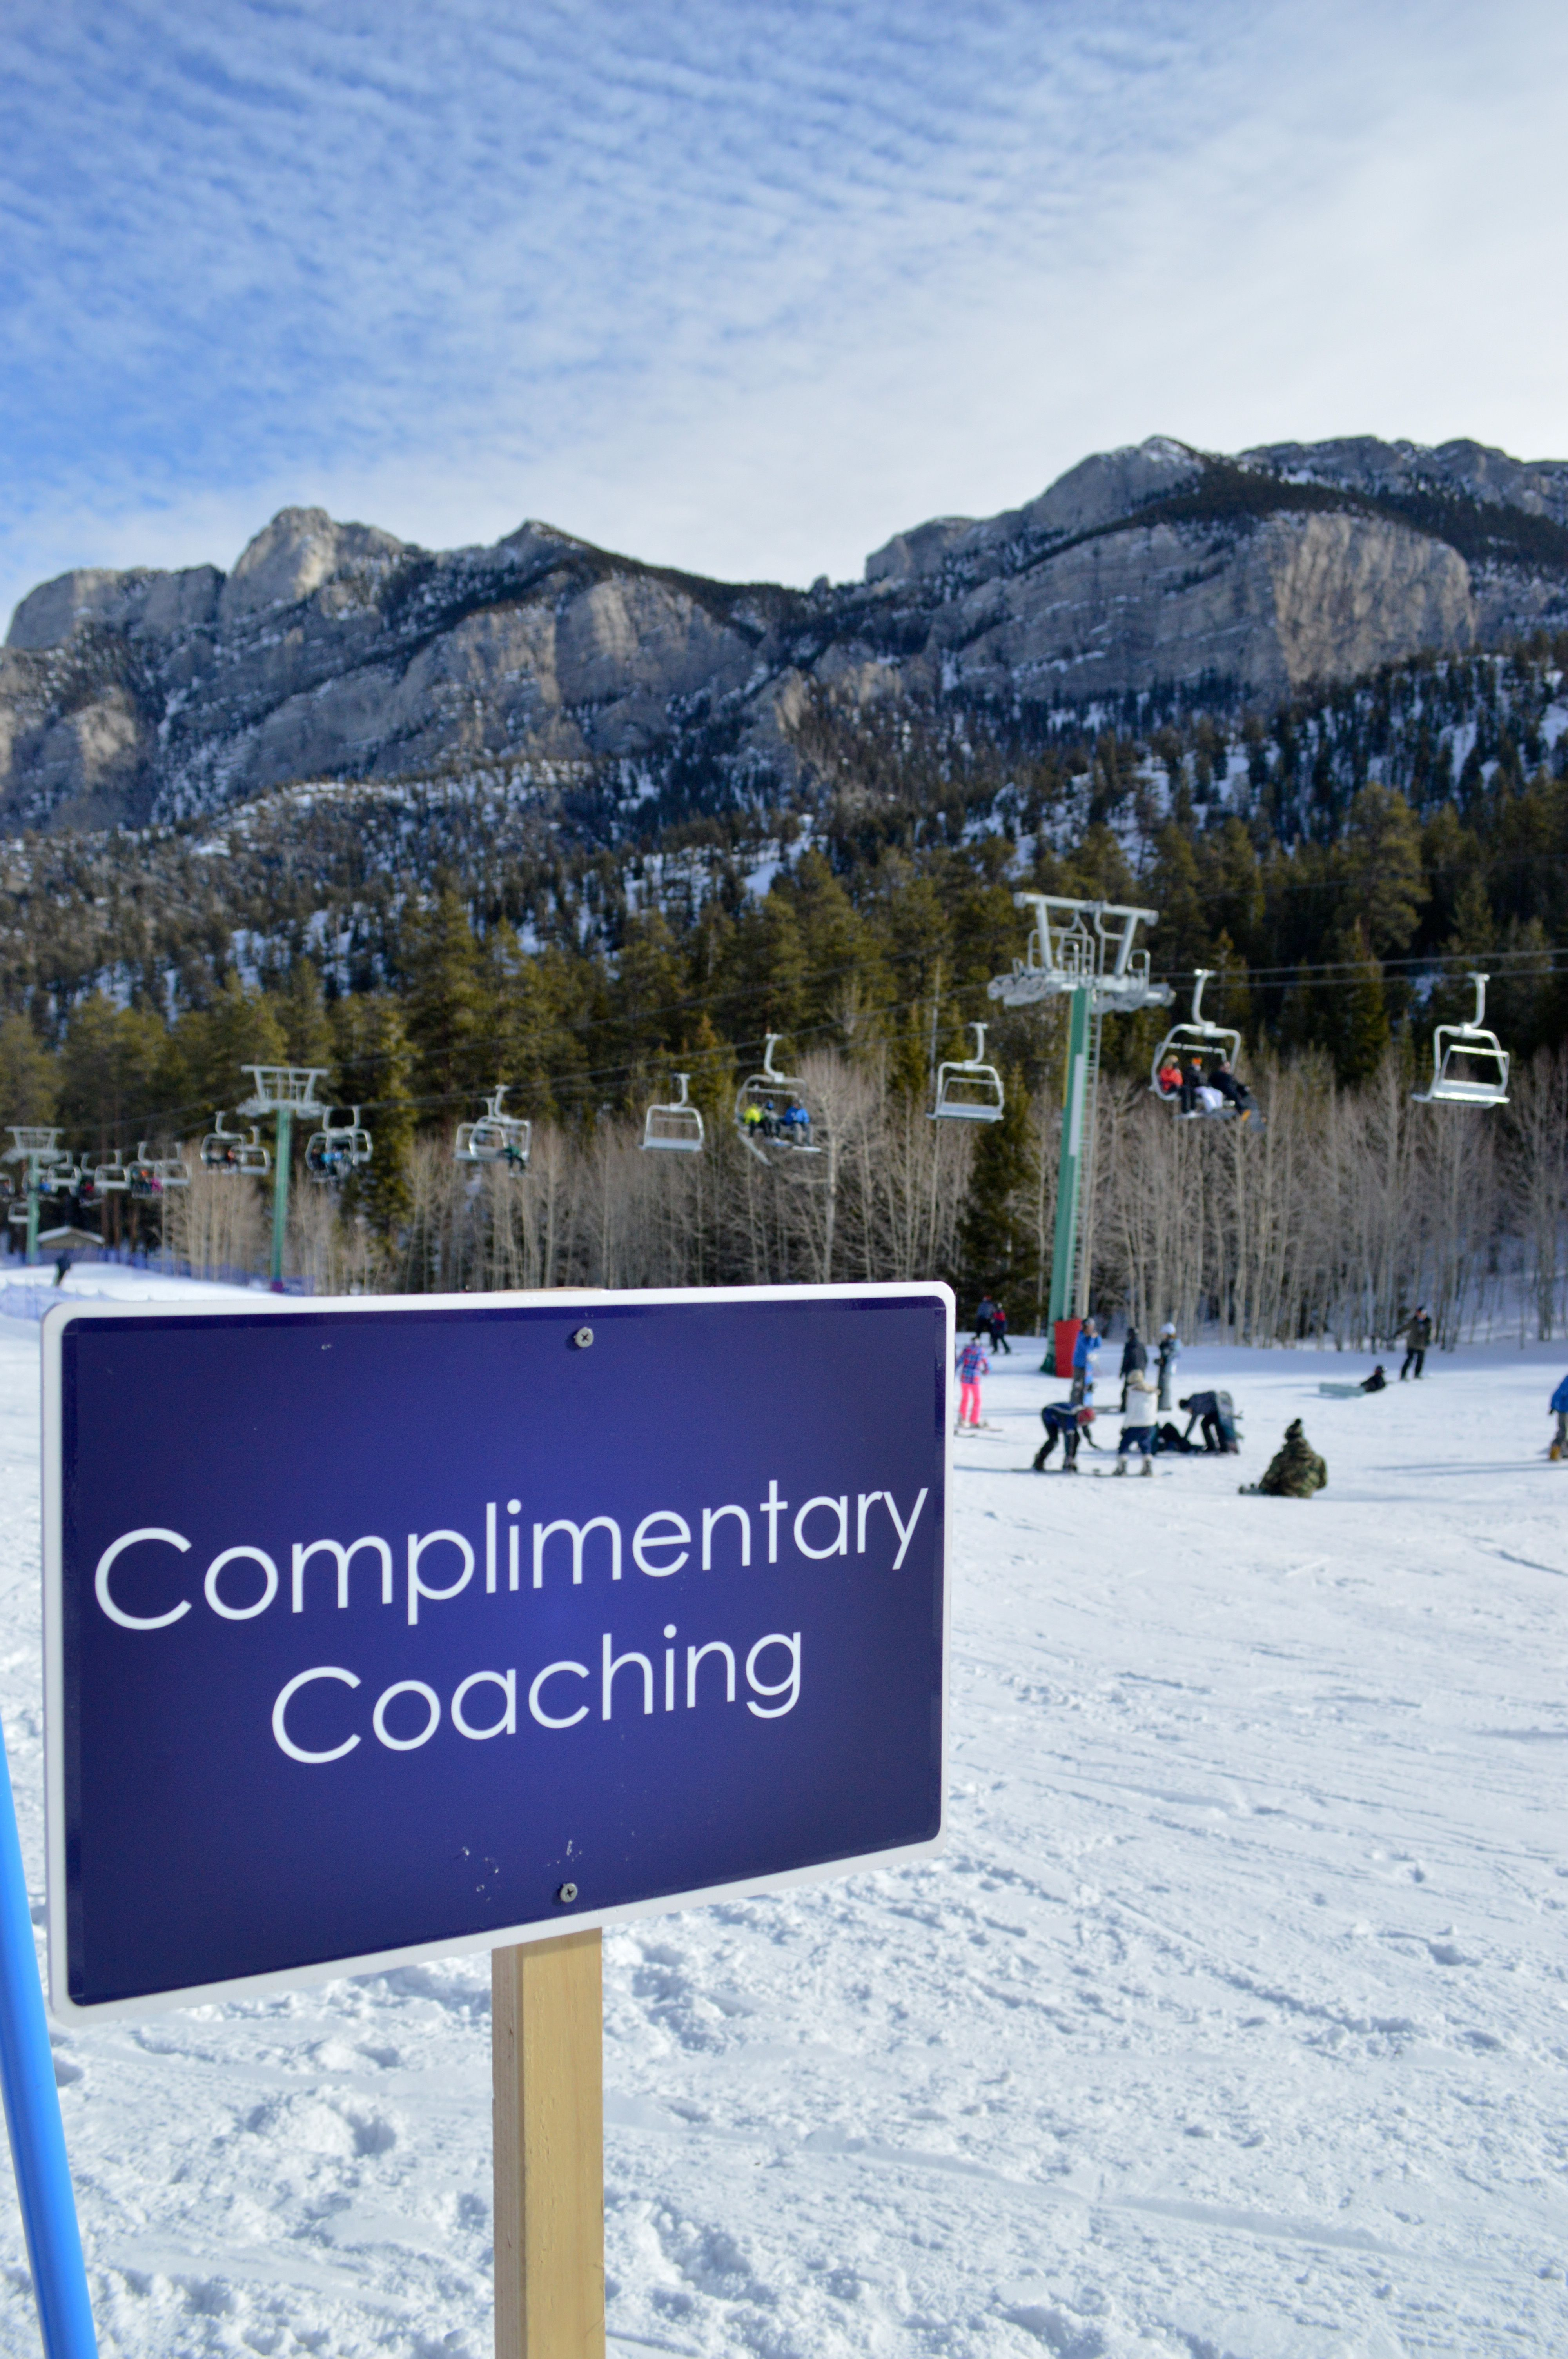 complimentary coaching at las vegas ski and snowboard resort! lee